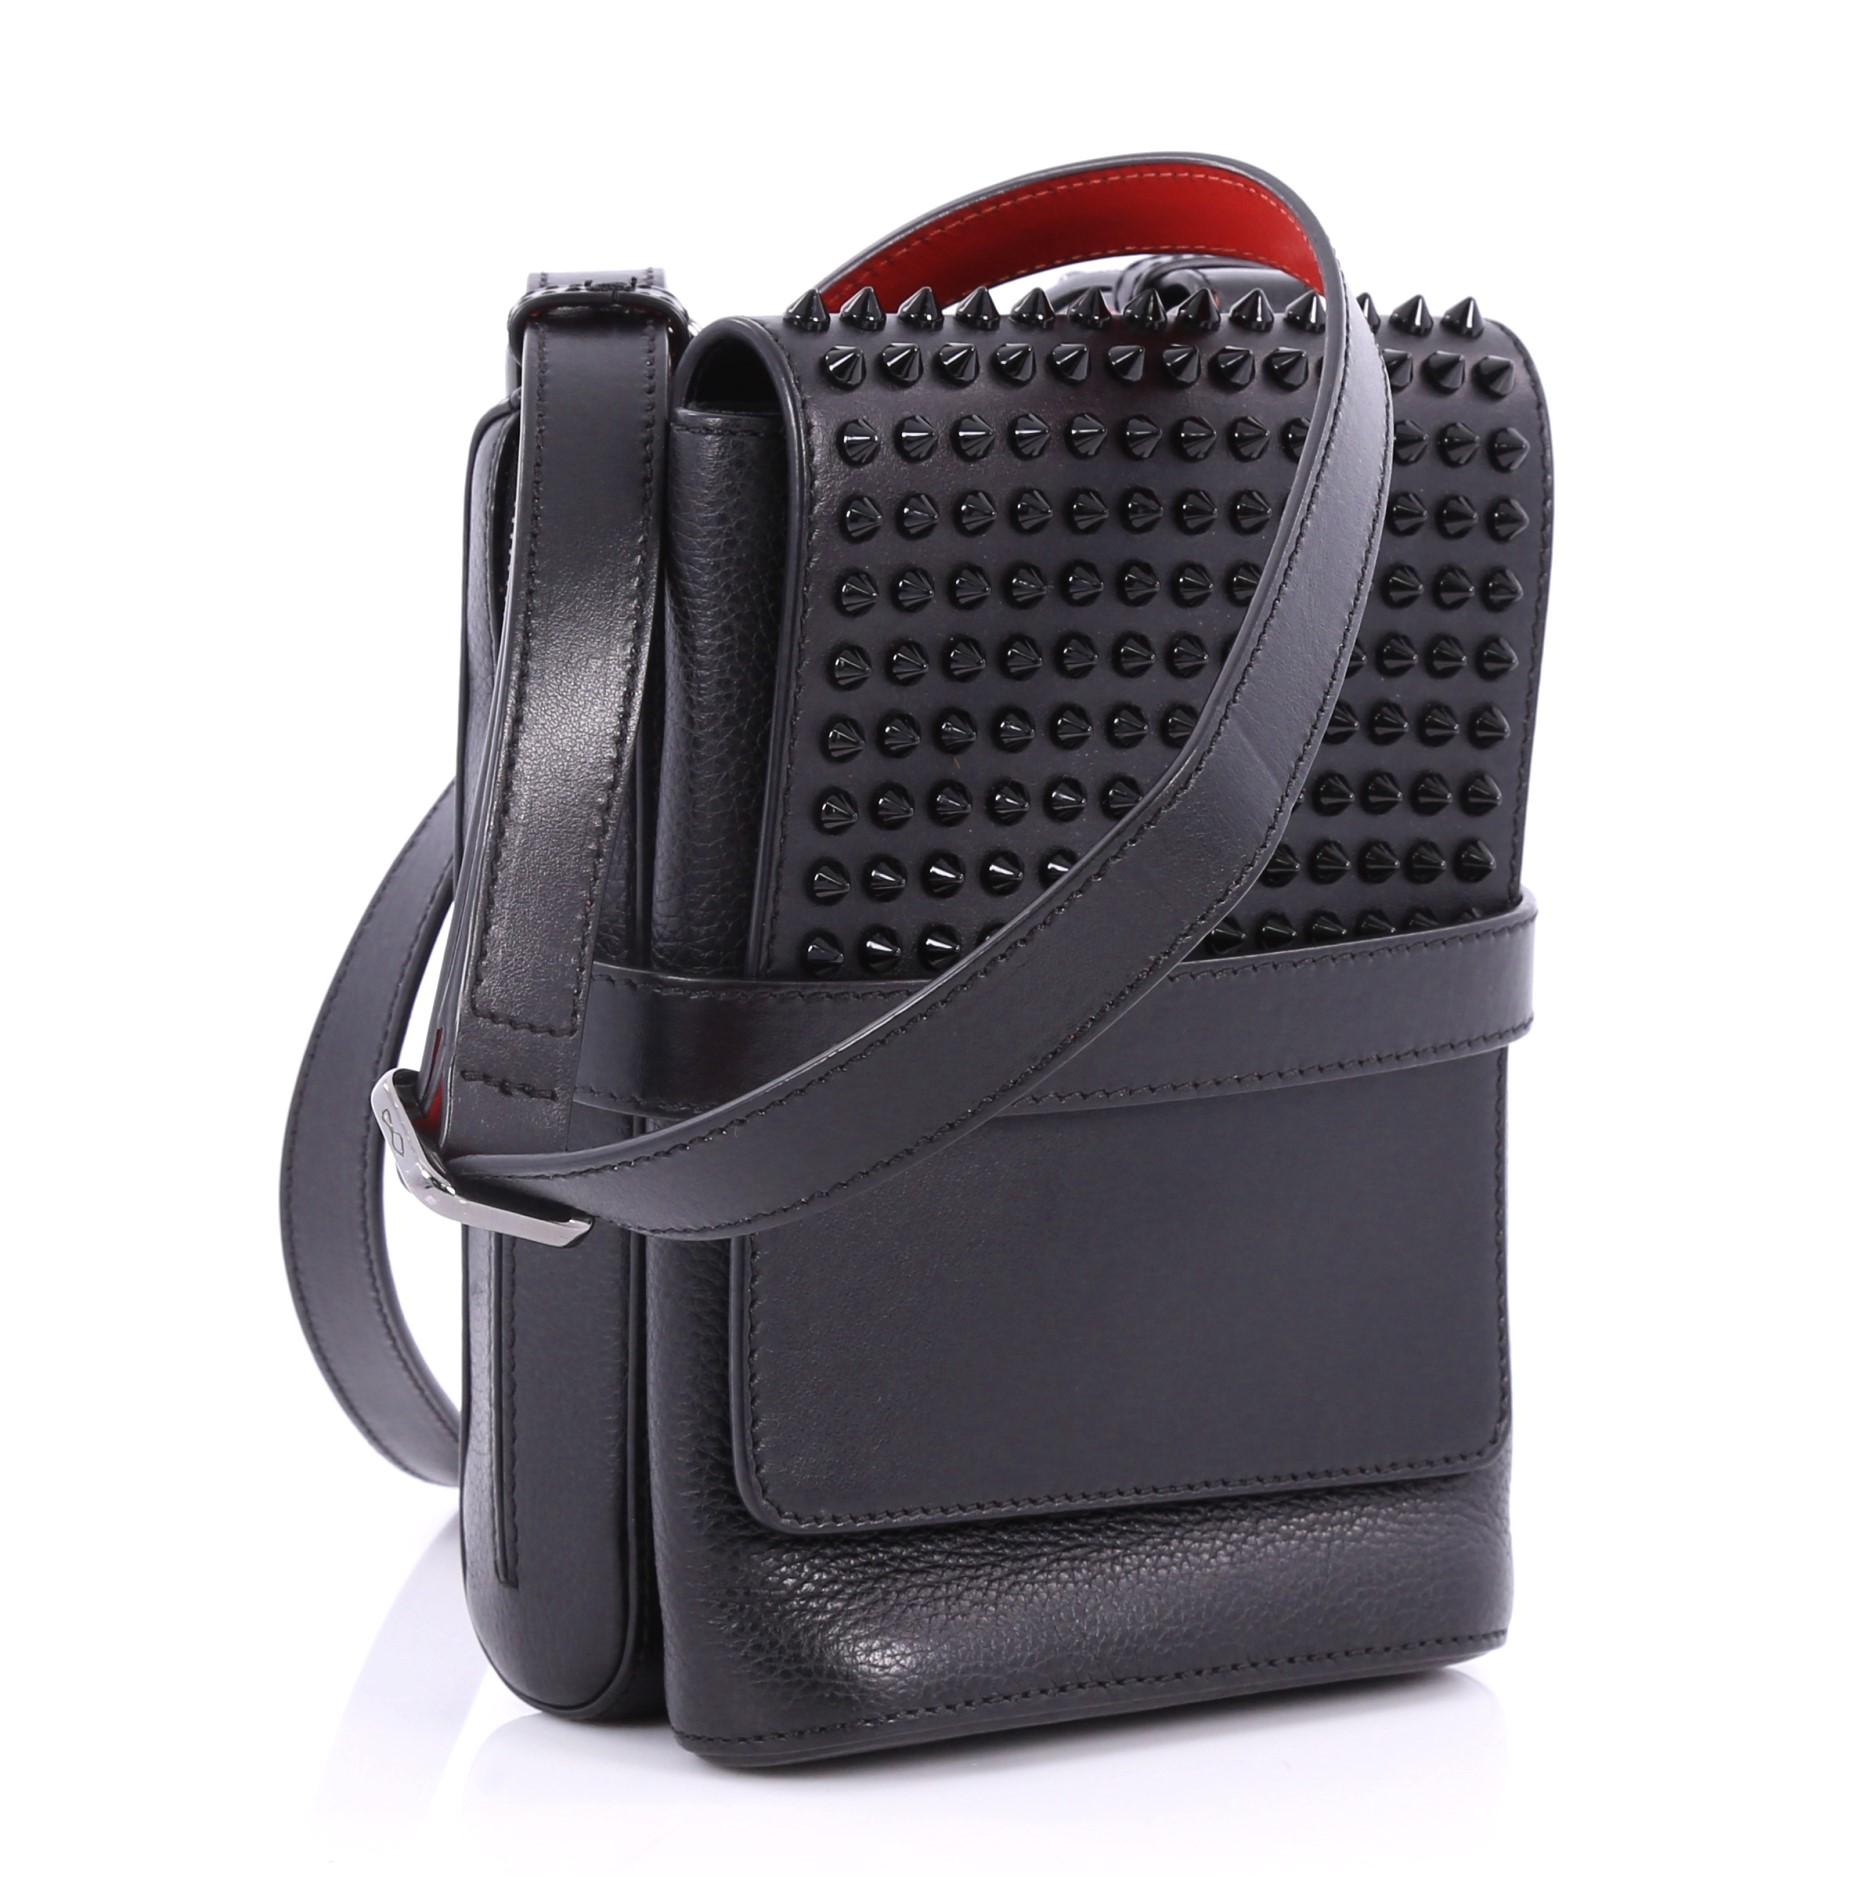 4989aff8d97 Christian Louboutin Benech Reporter Bag Spiked Leather